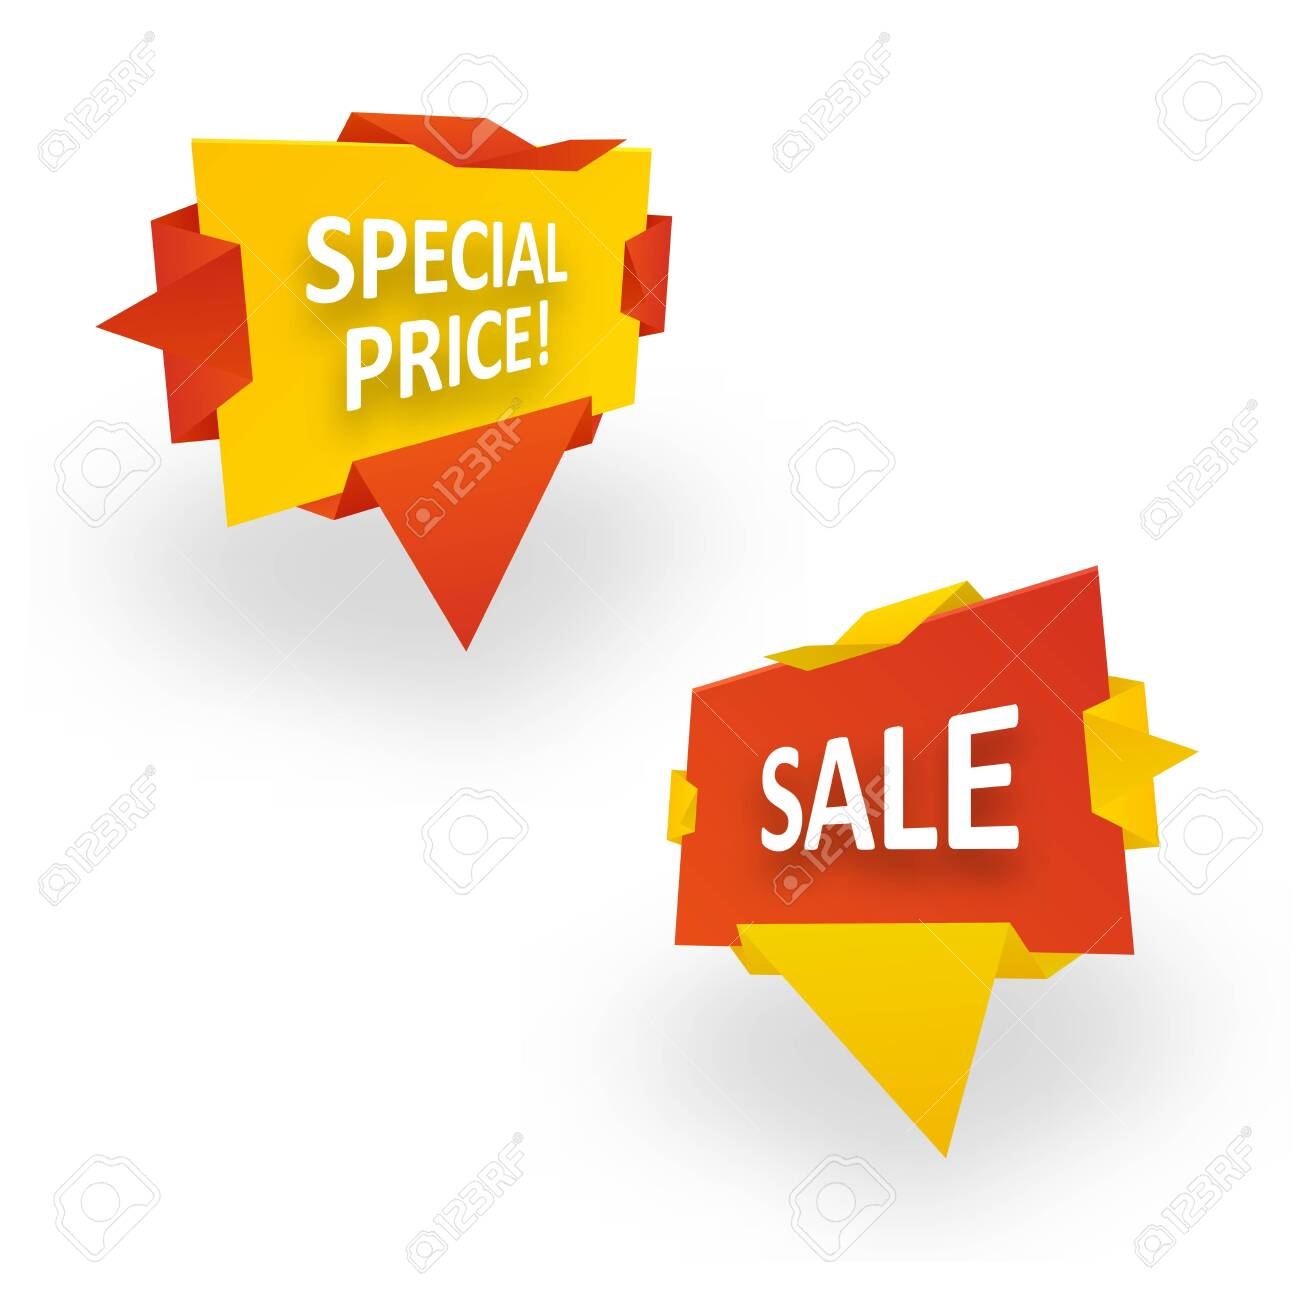 Origami banner wrapped in paper. Special Price Sale. Graphic concept for your design - 146264249